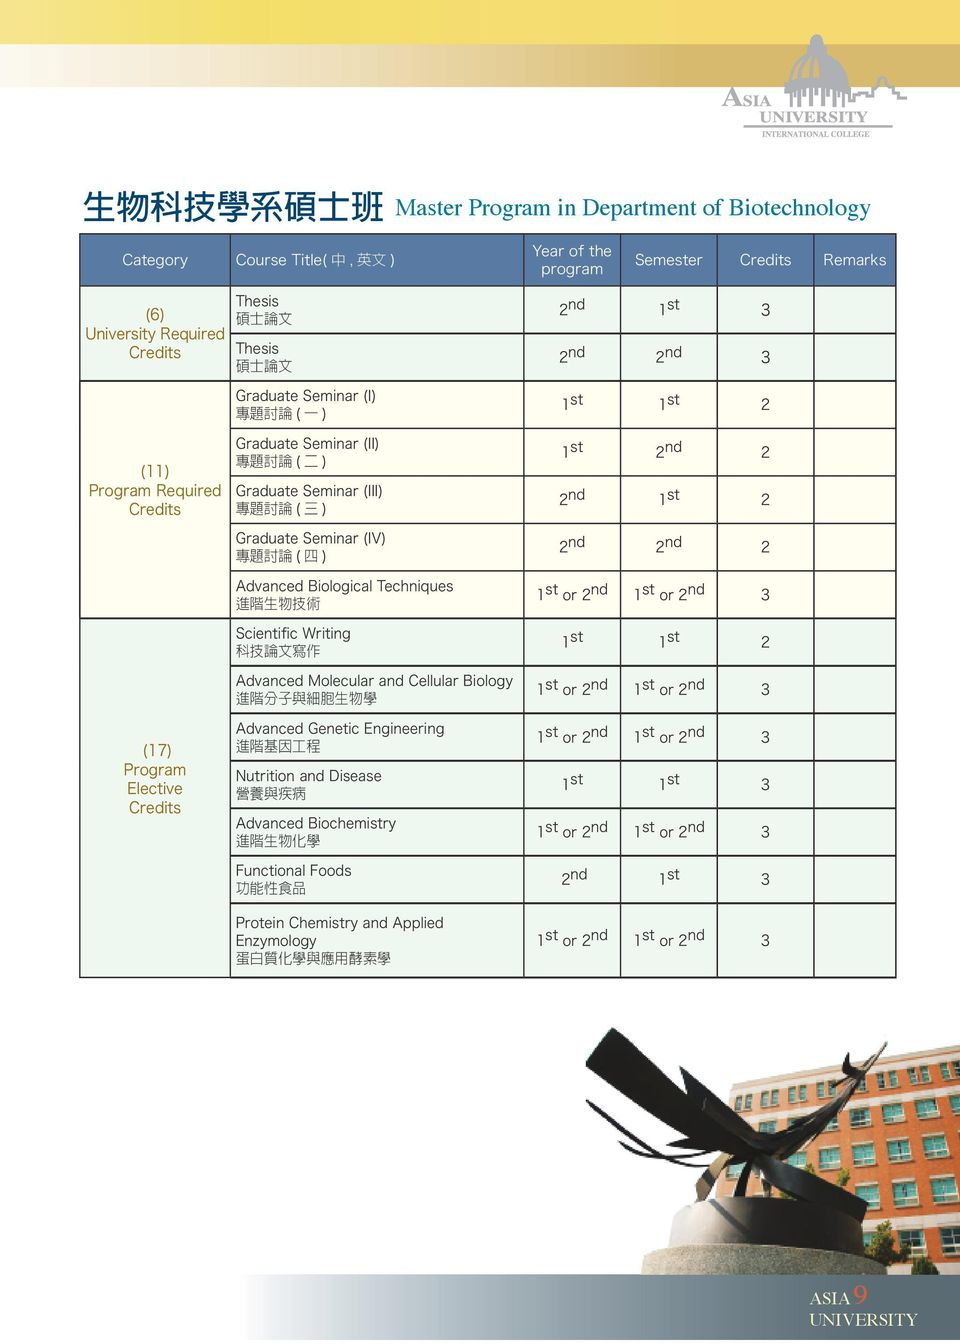 術 Scientific Writing 科 技 論 文 寫 作 Advanced Molecular and Cellular Biology 進 階 分 子 與 細 胞 生 物 學 2 nd 1 st 3 2 nd 2 nd 3 1 st 1 st 2 1 st 2 nd 2 2 nd 1 st 2 2 nd 2 nd 2 1 st 1 st 2 (17) Program Elective